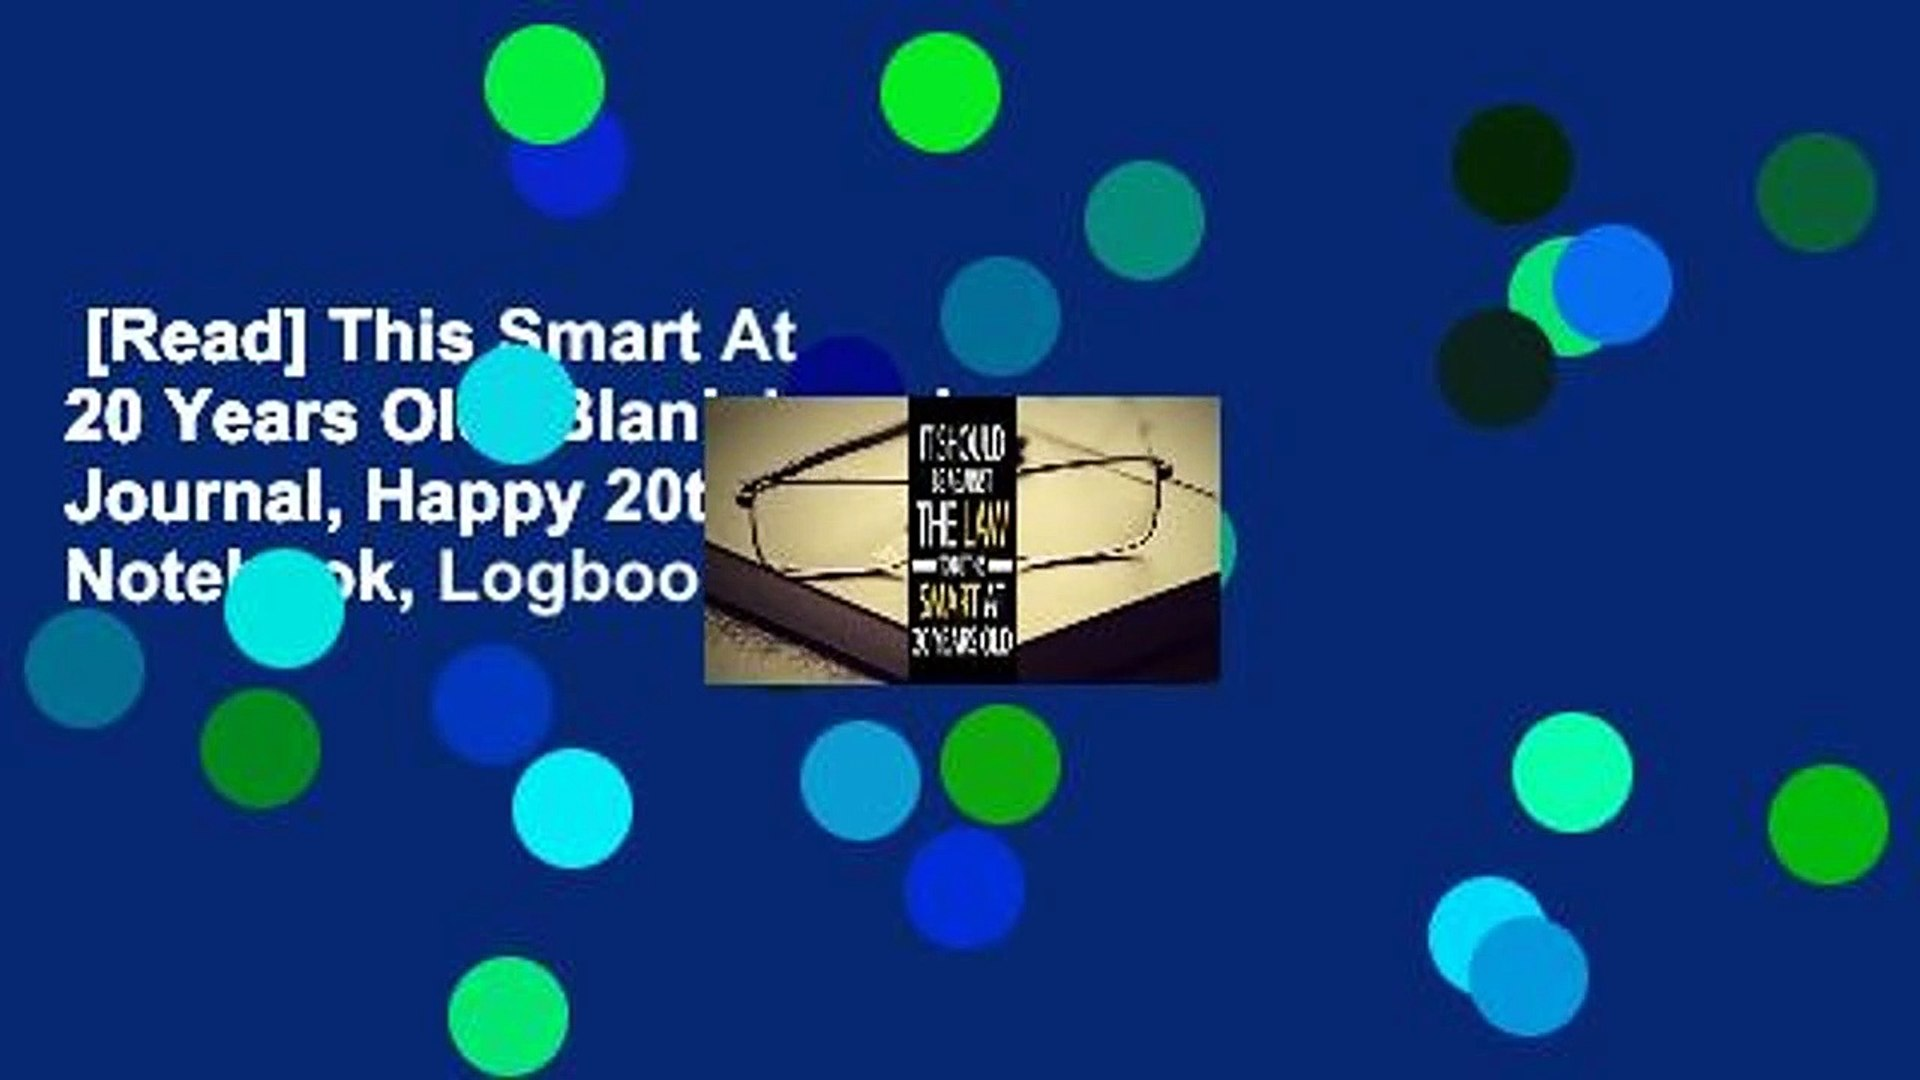 [Read] This Smart At 20 Years Old: Blank Lined Journal, Happy 20th Birthday Notebook, Logbook,